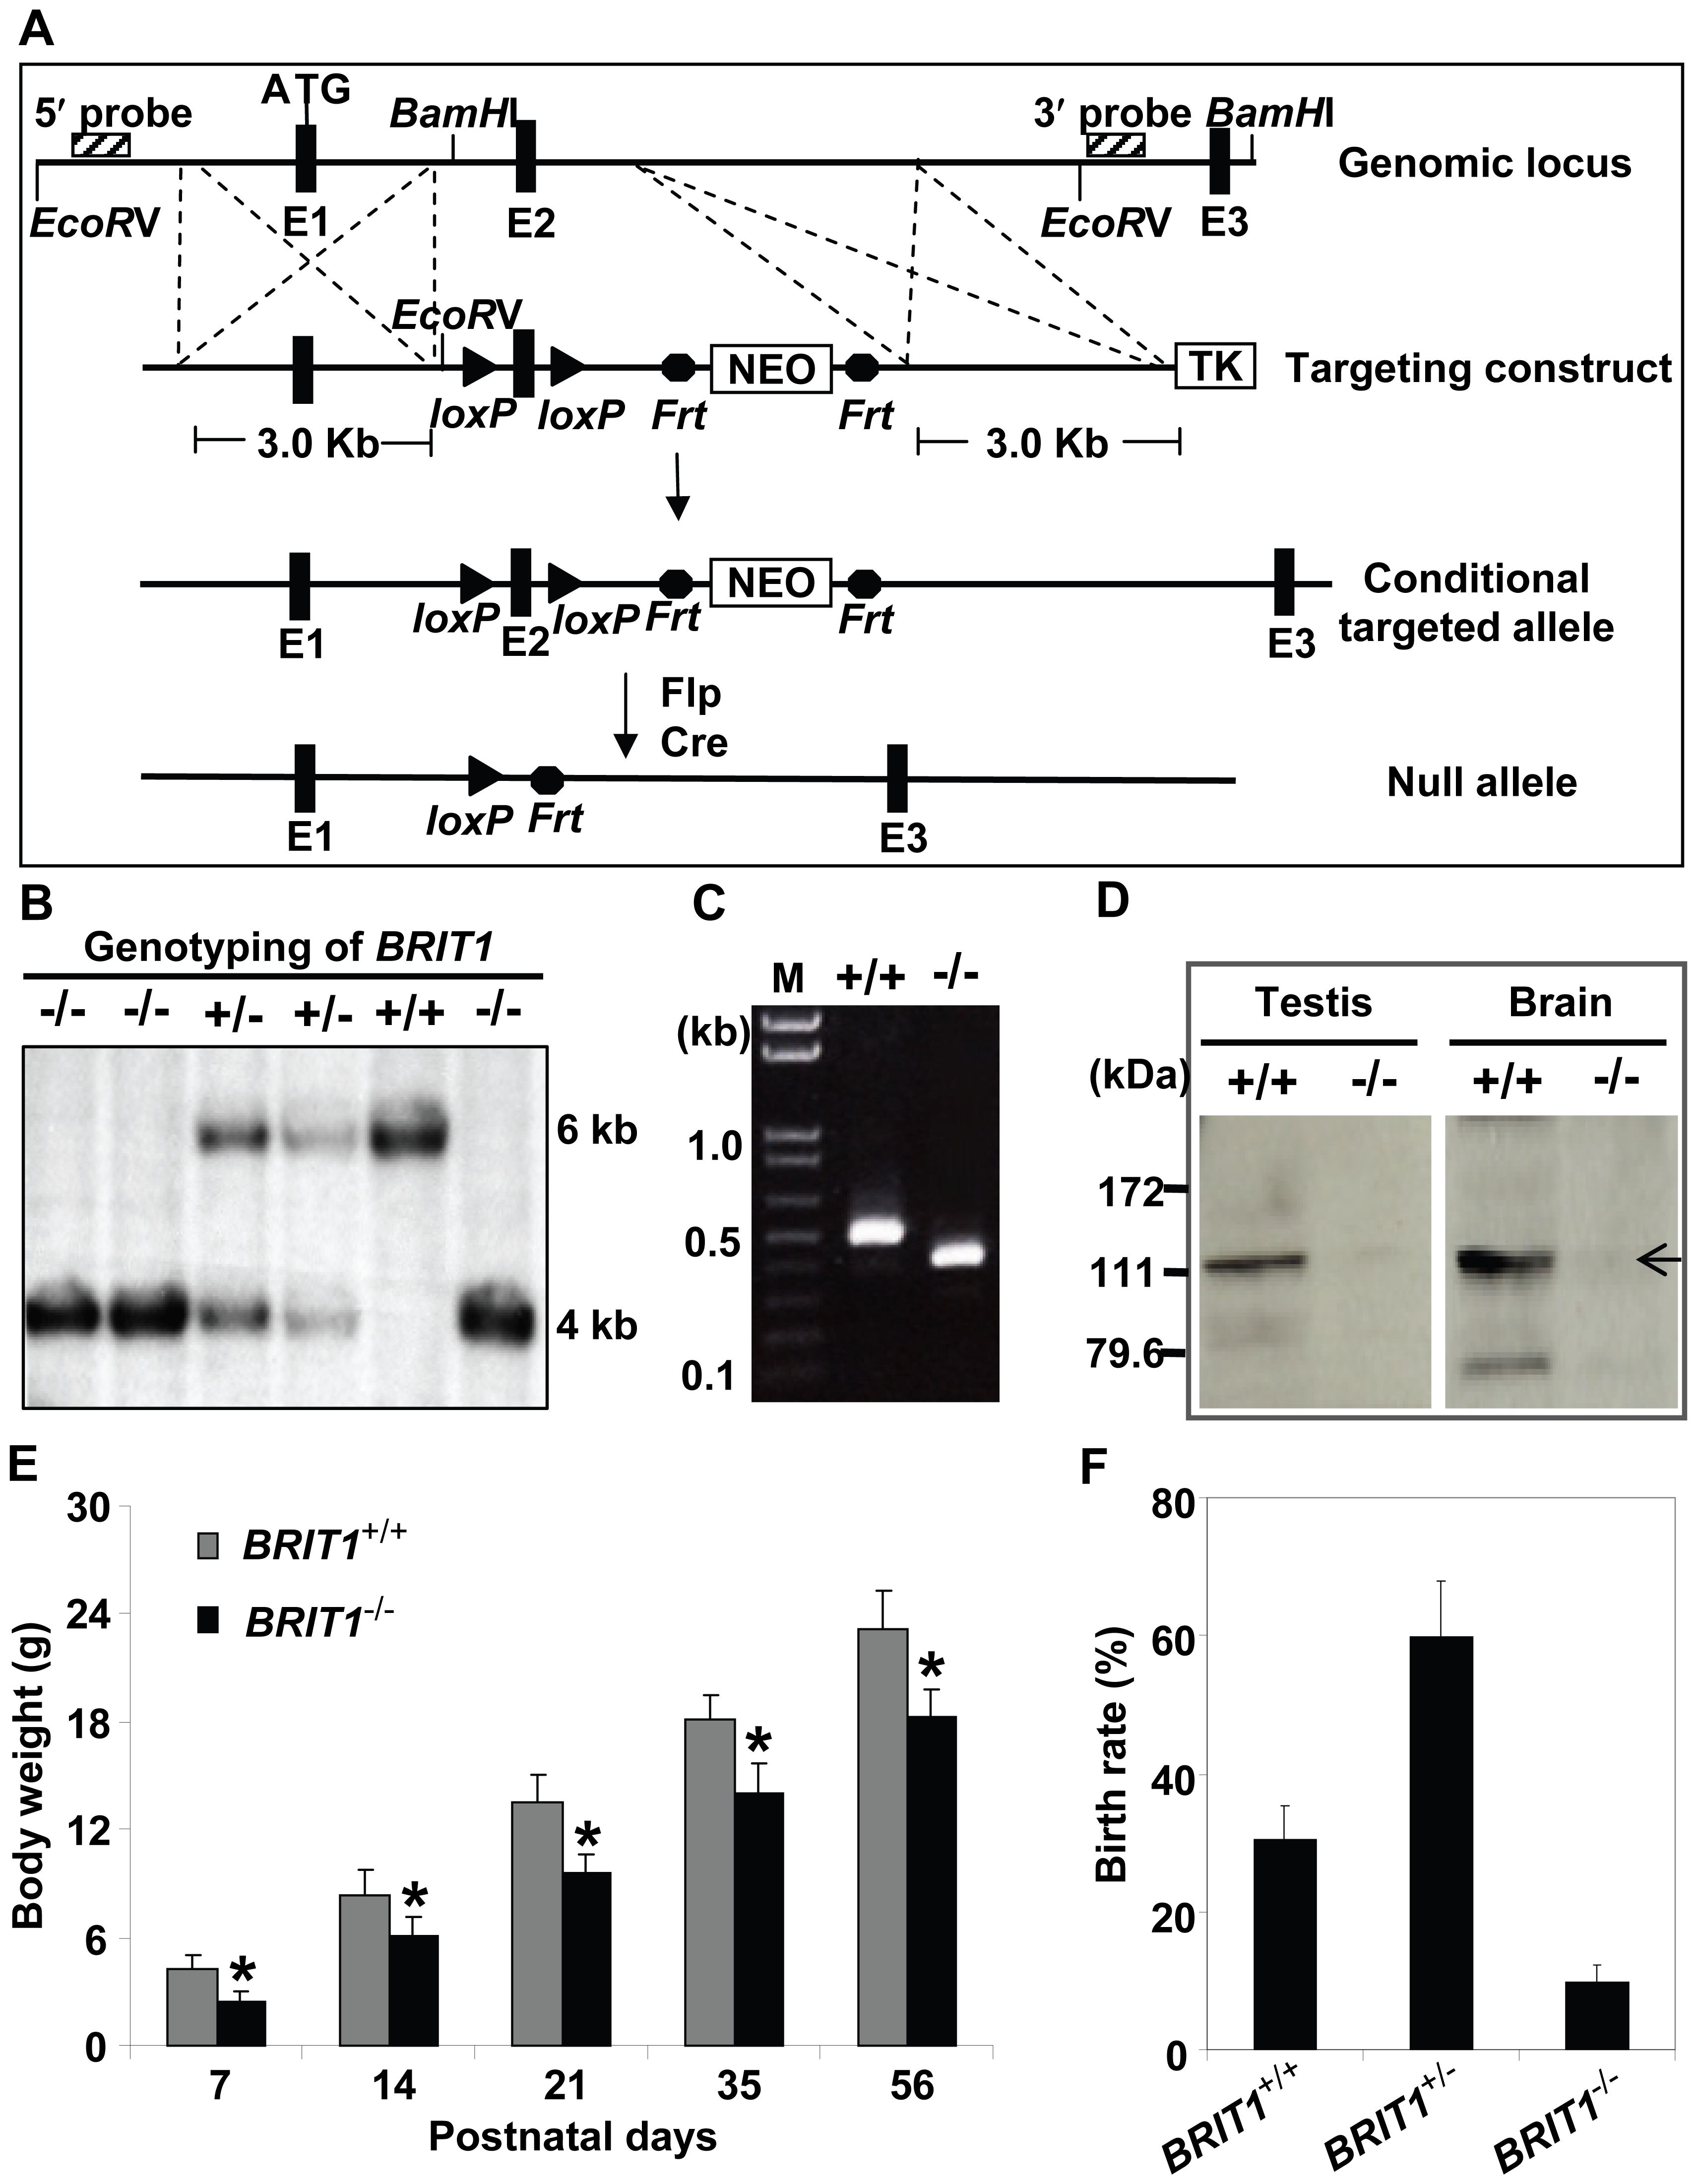 Generation and growth retardation of <i>BRIT1</i>-deficient mouse.